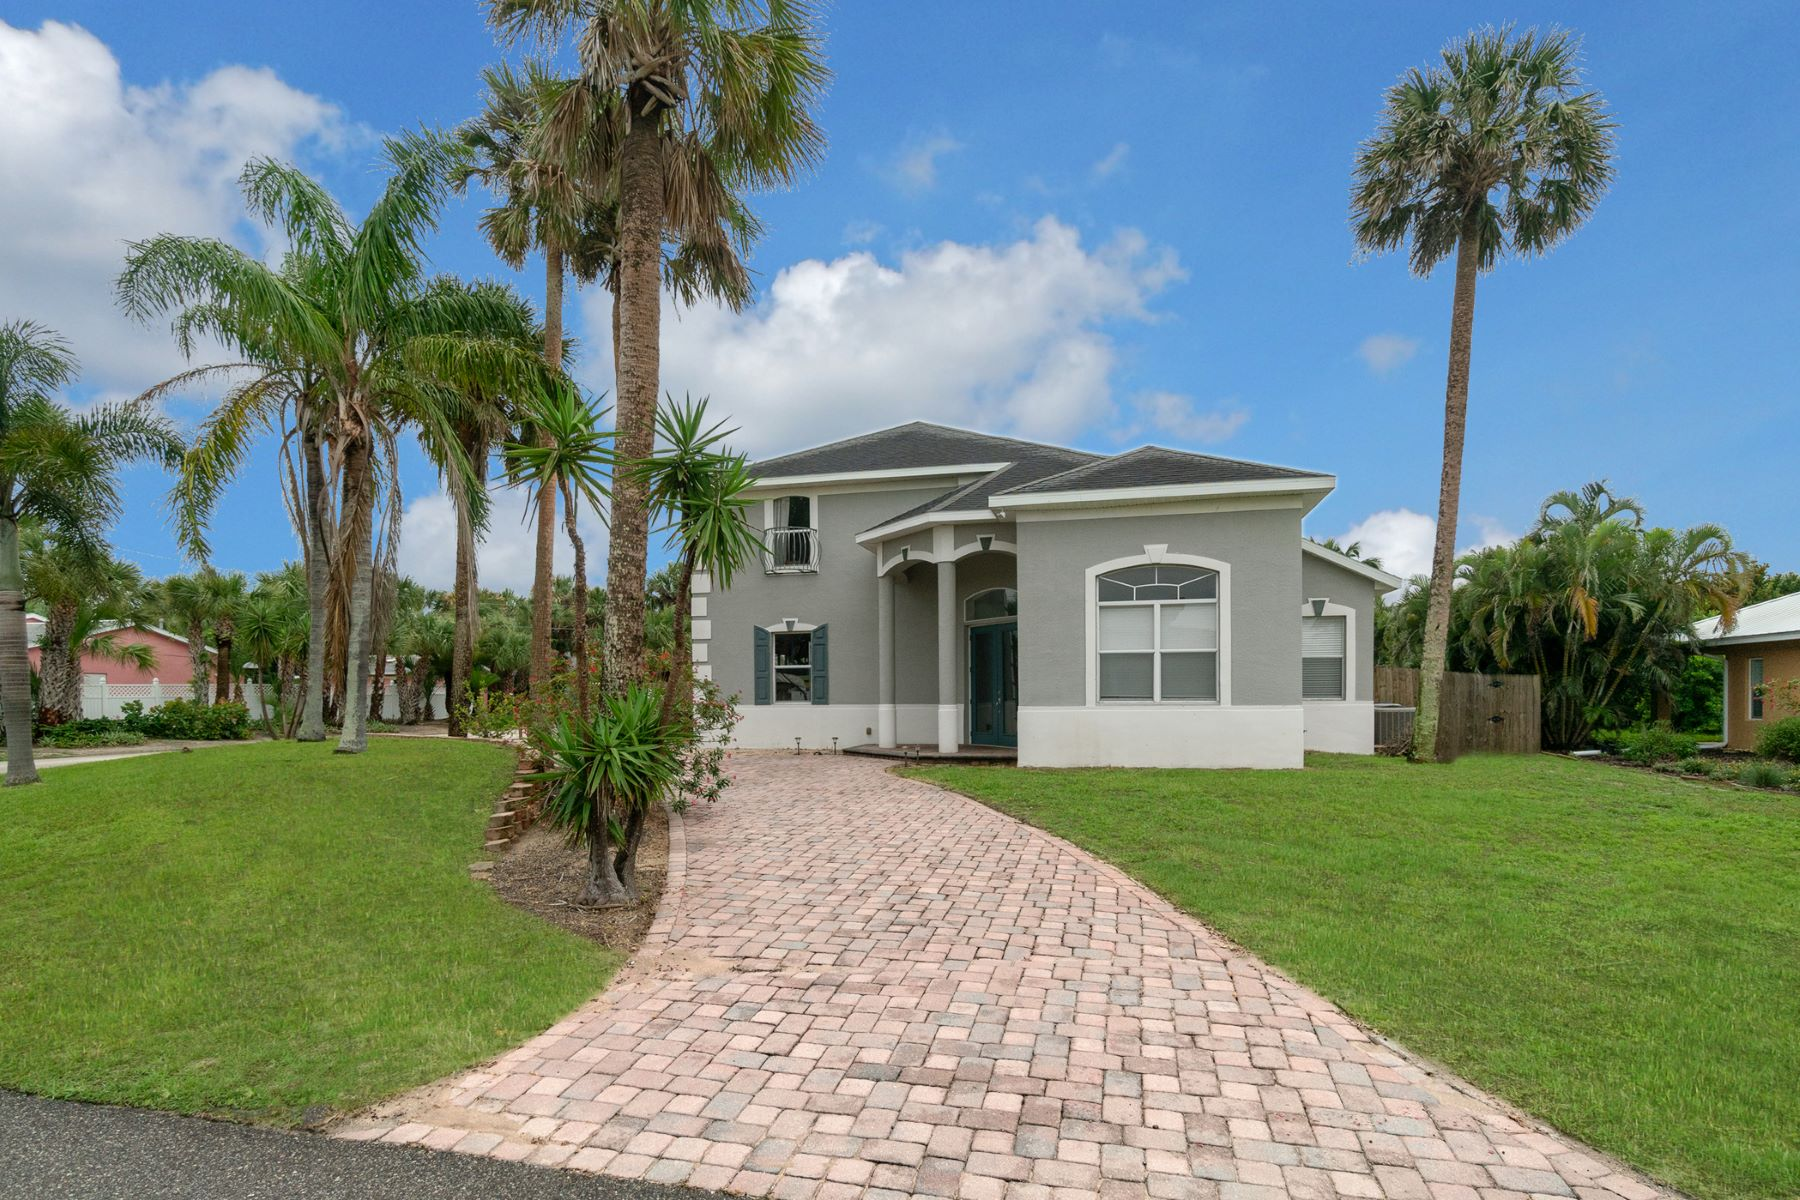 Single Family Homes for Sale at Gorgeous Home Only Steps From the Ocean 301 First Avenue Melbourne Beach, Florida 32951 United States